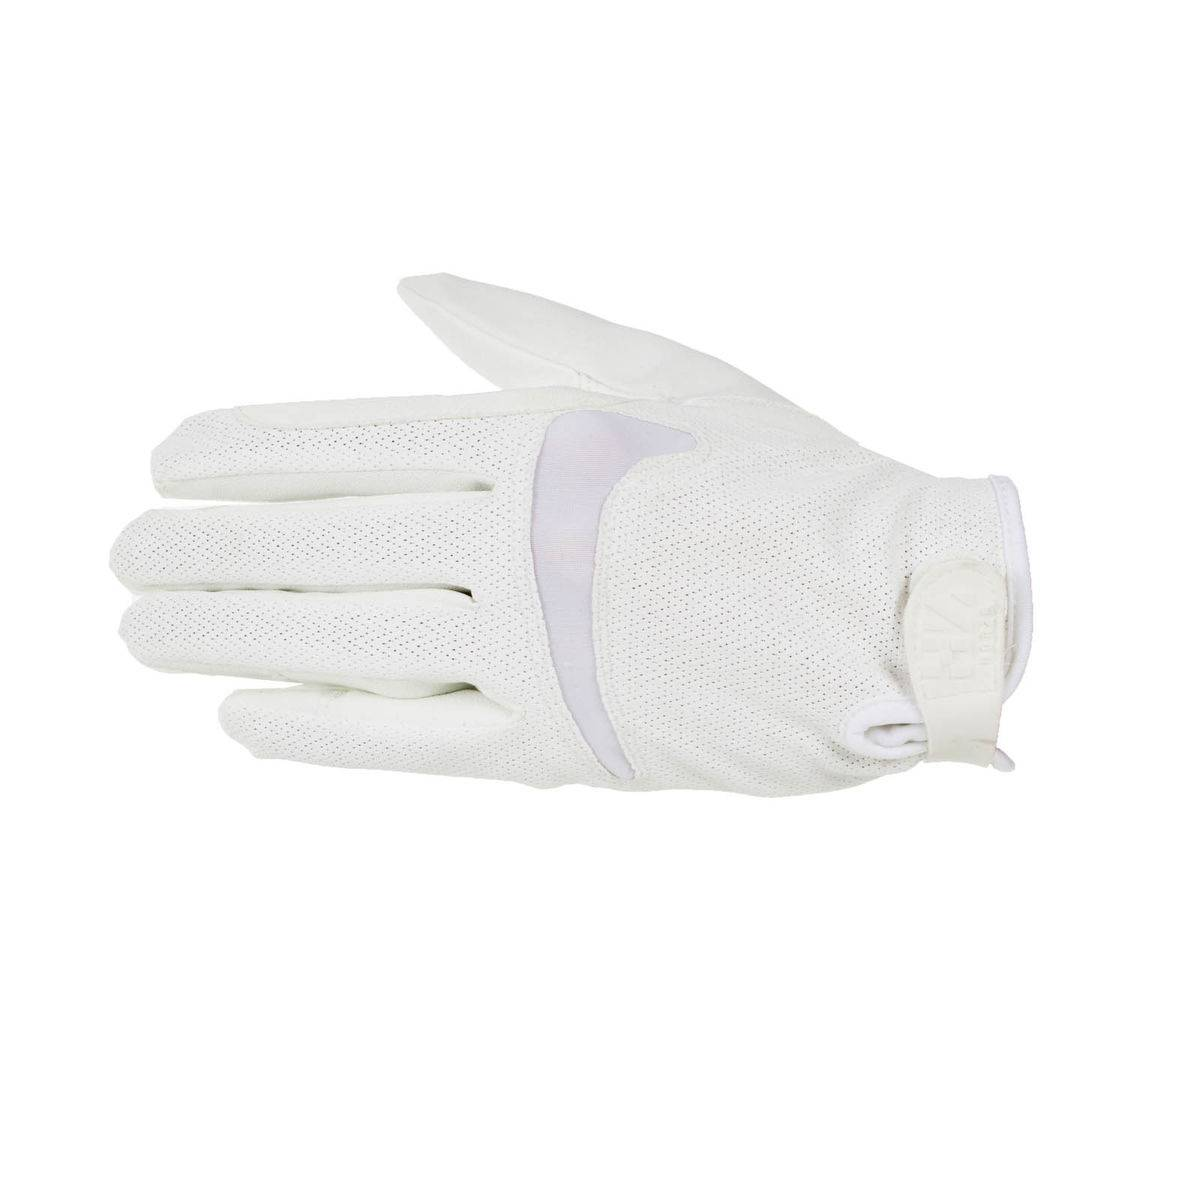 Horze Kara Technical Gloves - Ladies